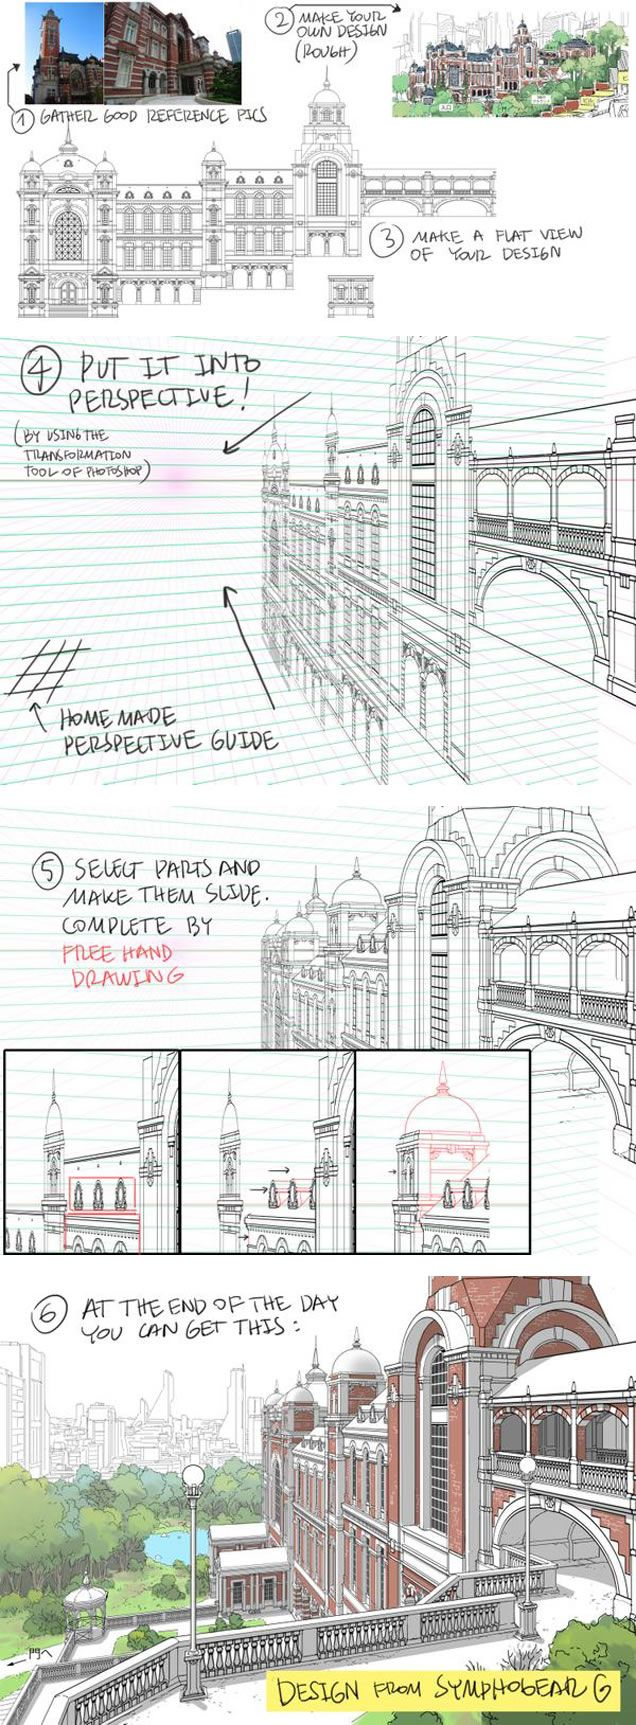 How to Draw Detailed Buildings - by Thomas Romain (one of the few foreigners working in the anime industry in Japan)